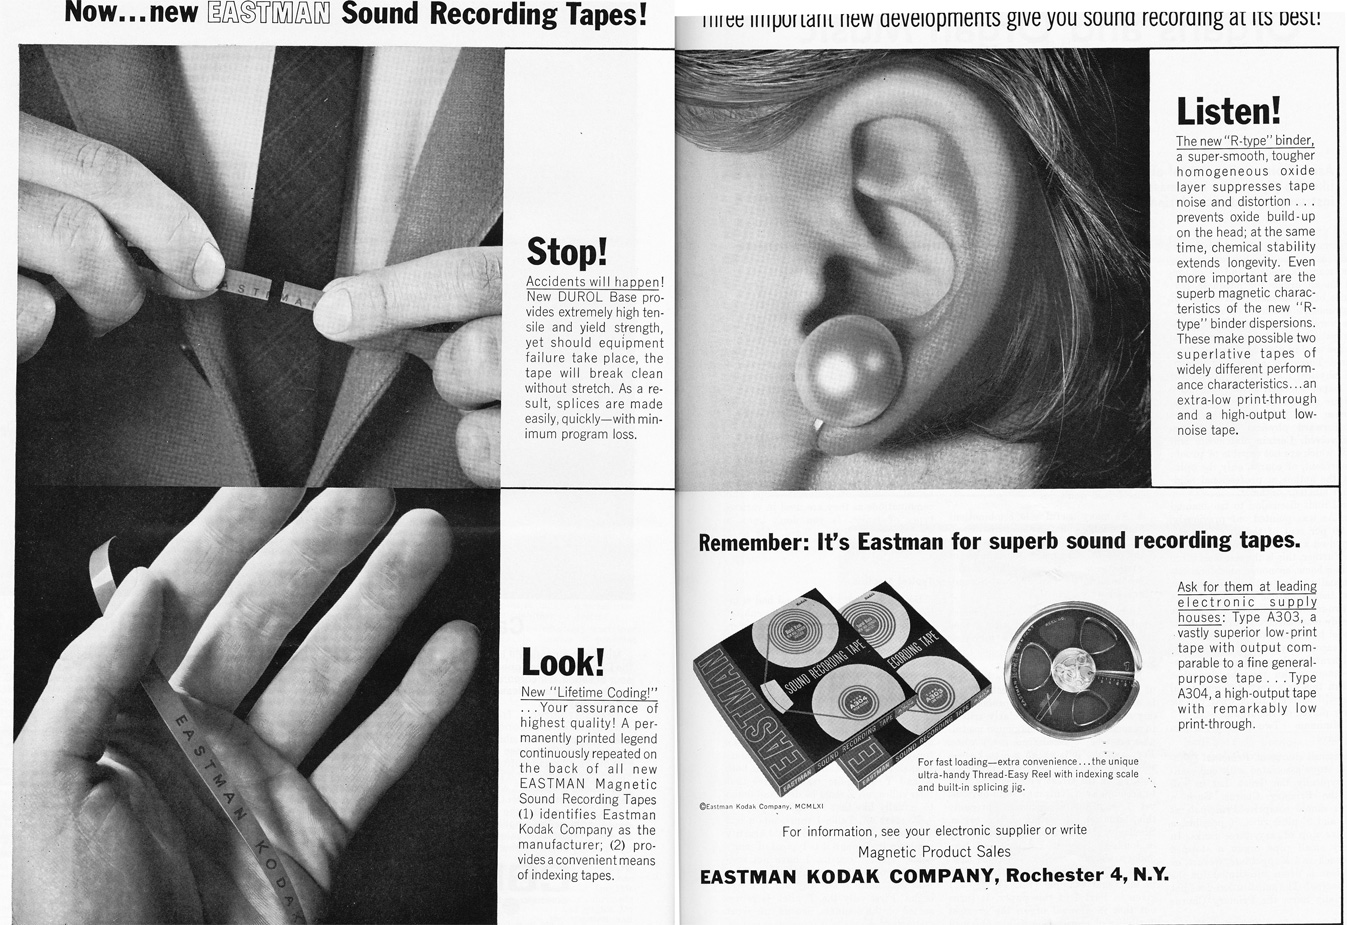 1963 ad for Eastman Kodak reel recording tape in Reel2ReelTexas.com's vintage recording collection